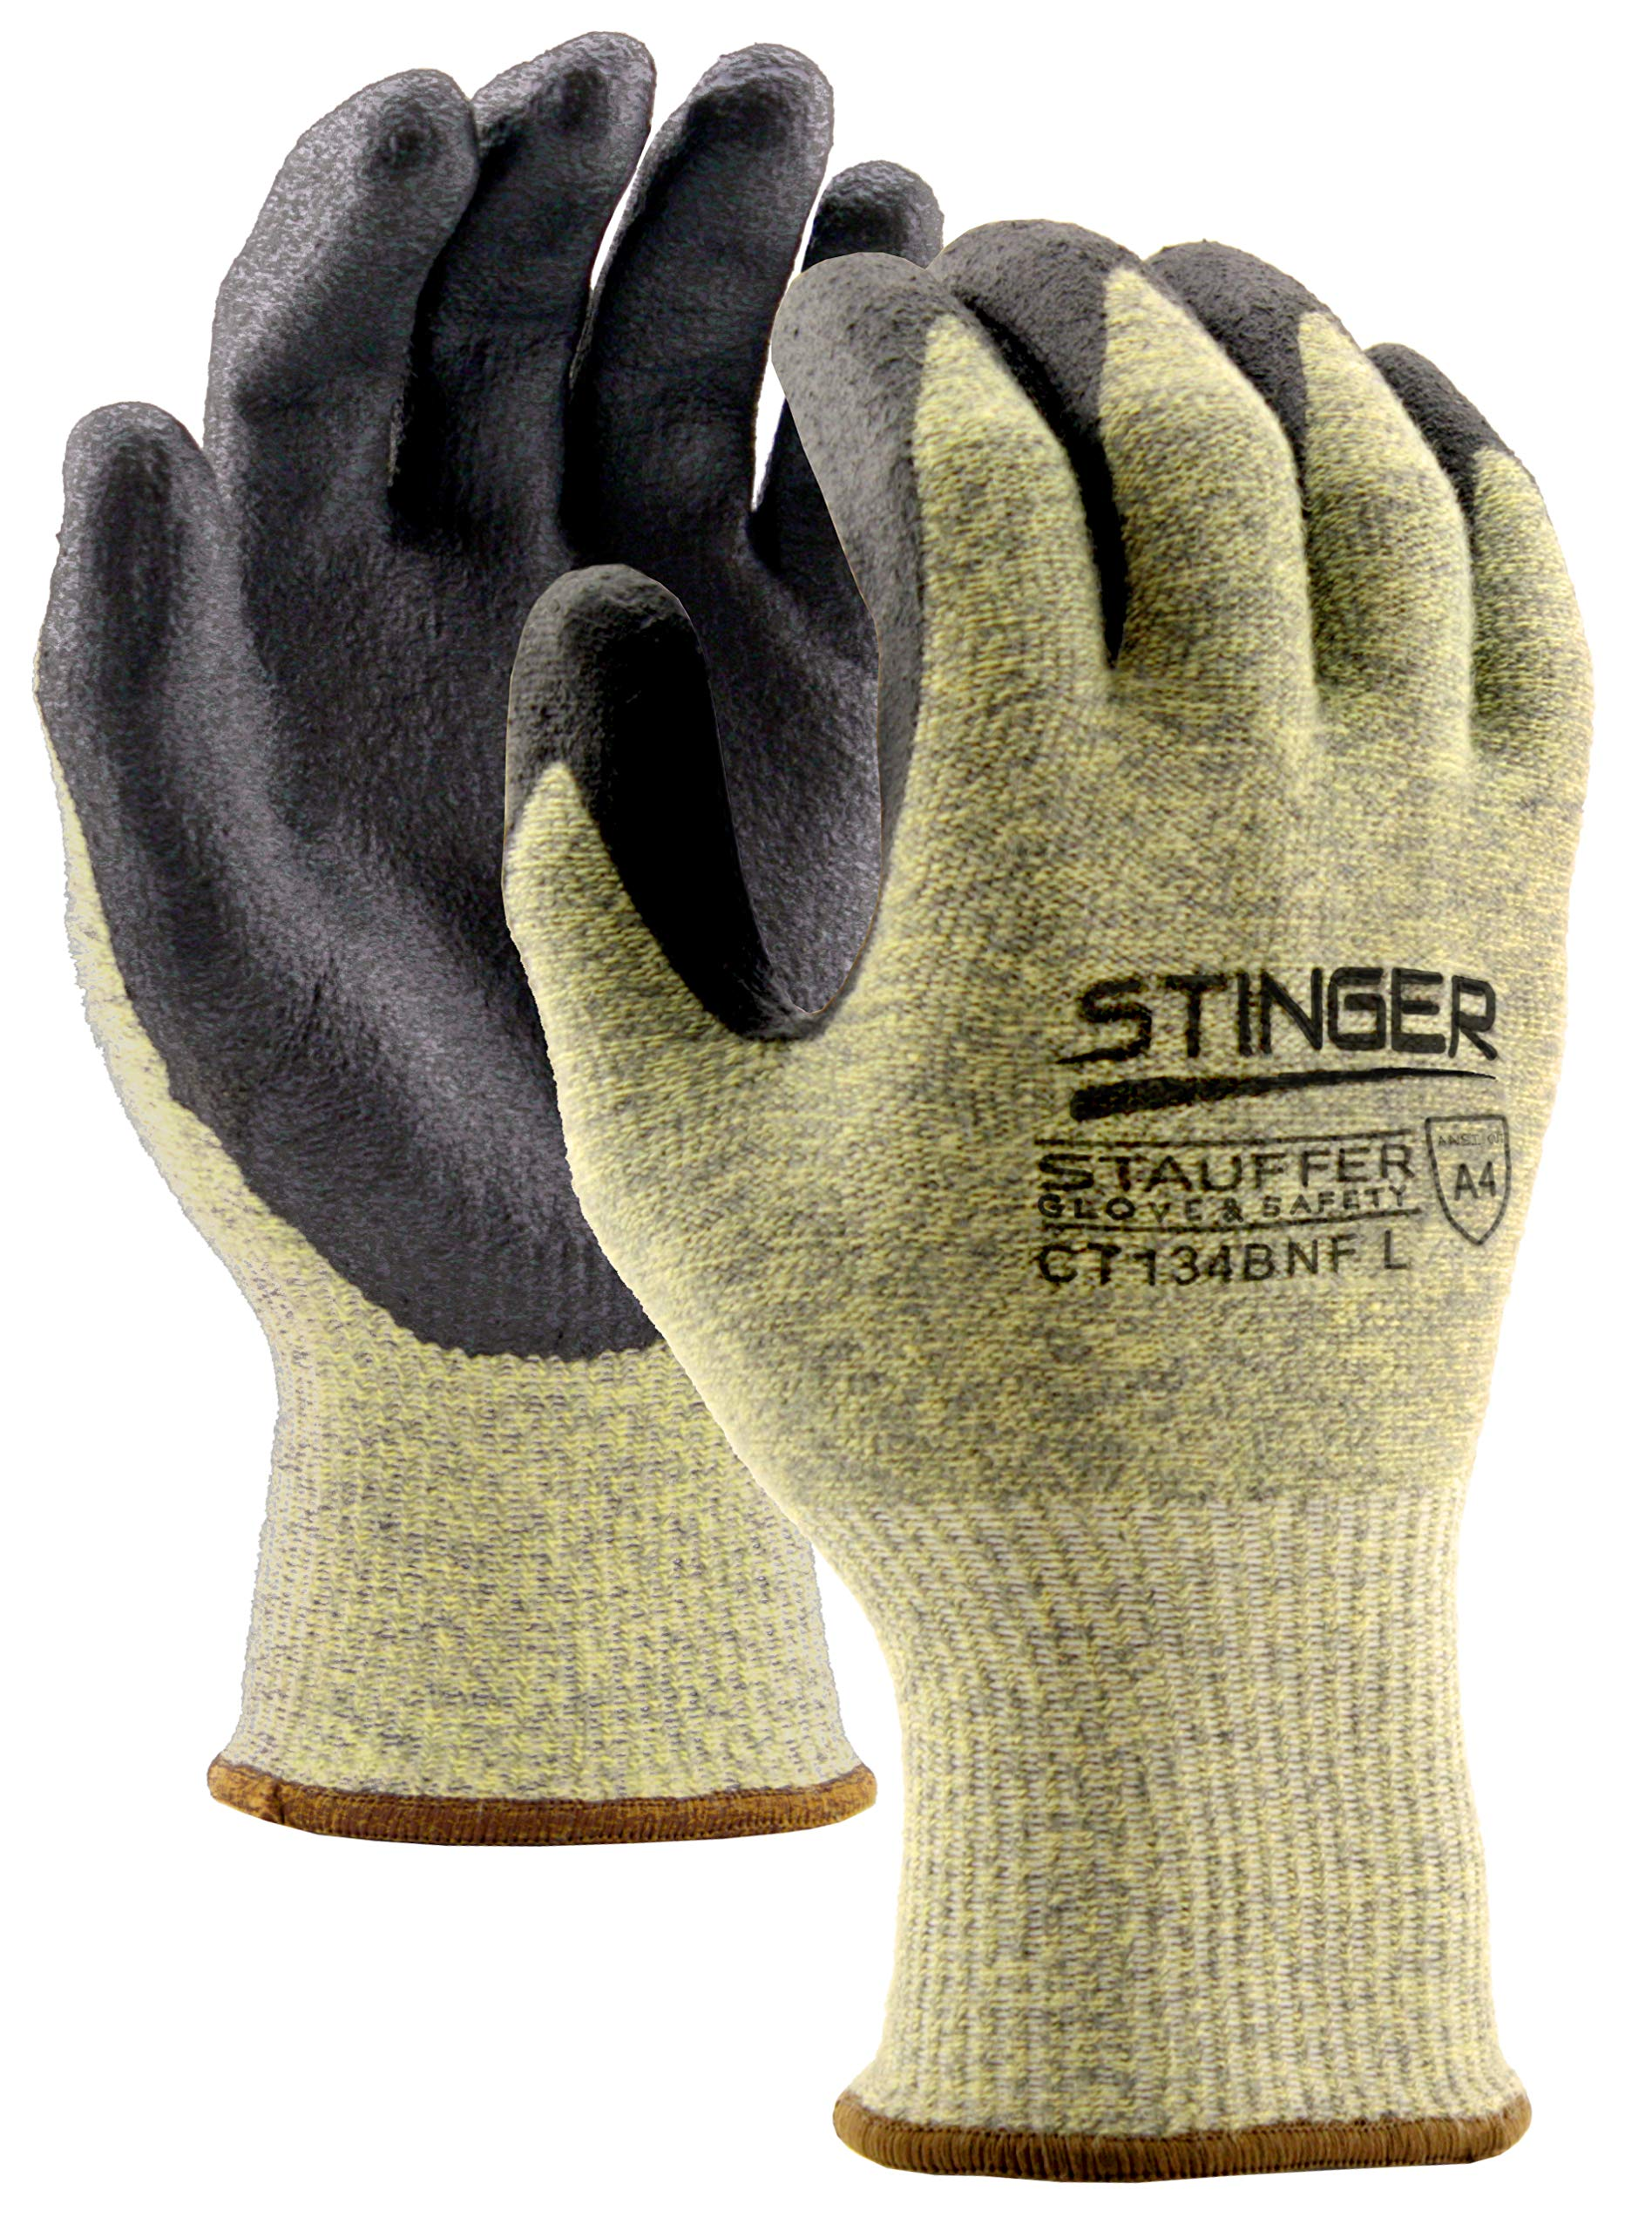 Stauffer Stinger™ Cut Resistant Glove with Nitrile Foam Coating, Cut Level A4, Large, (Pack of 12)